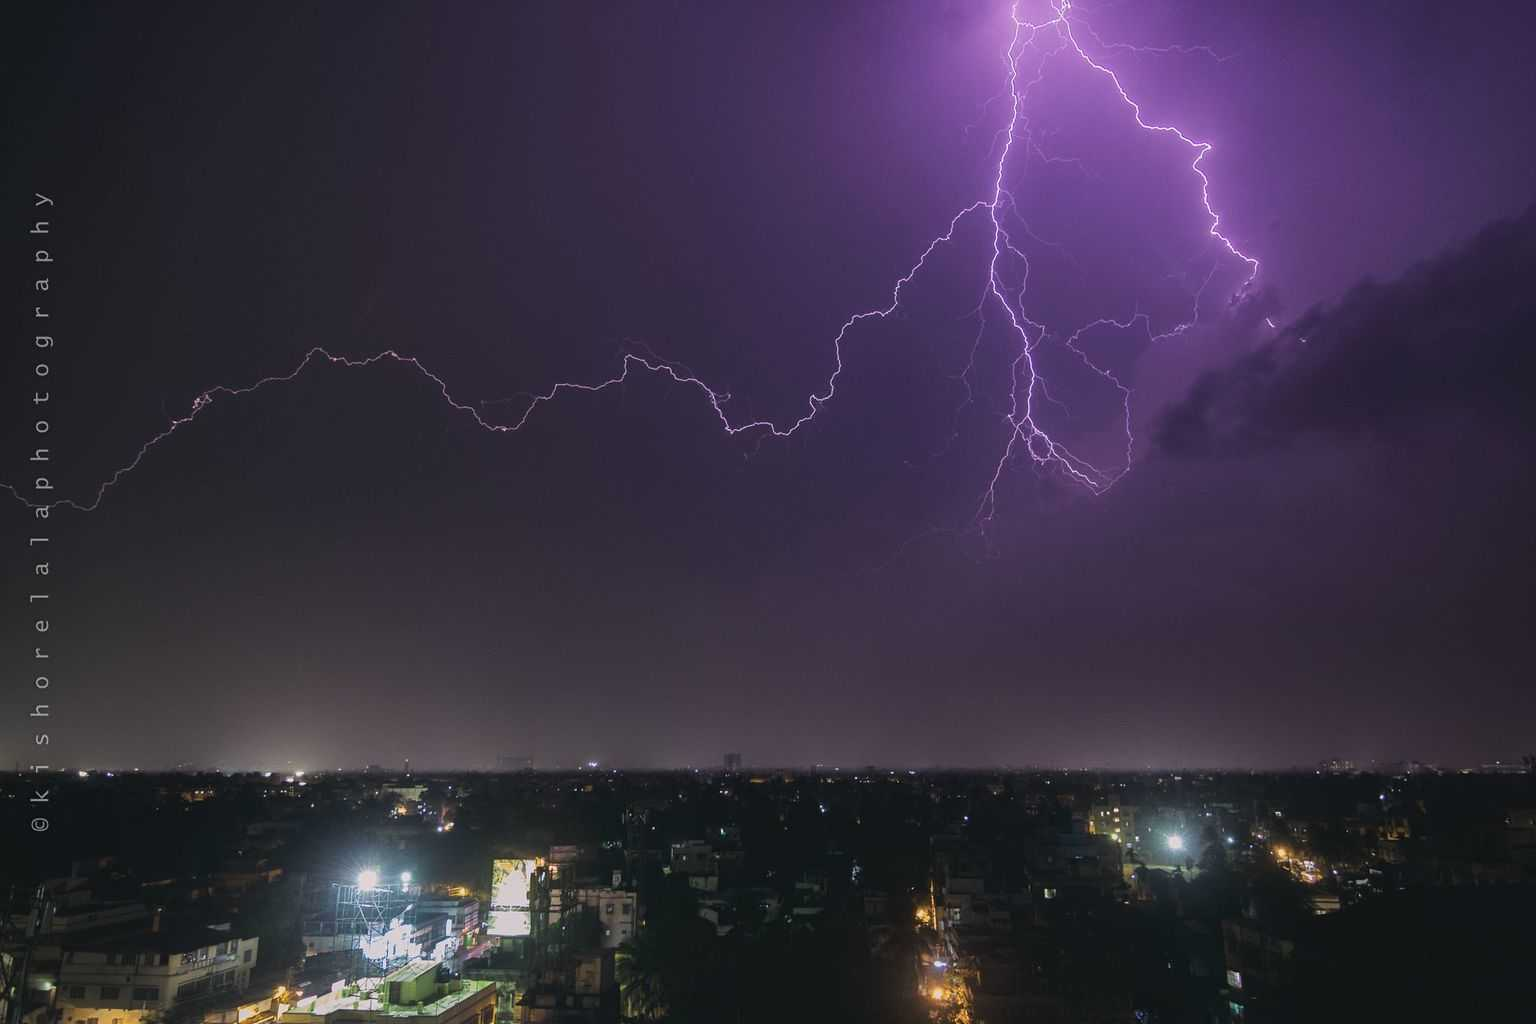 The intense heat finally gave way to some light showers yesterday in Kolkata. I was lucky to capture another lightning shot just before the rain.